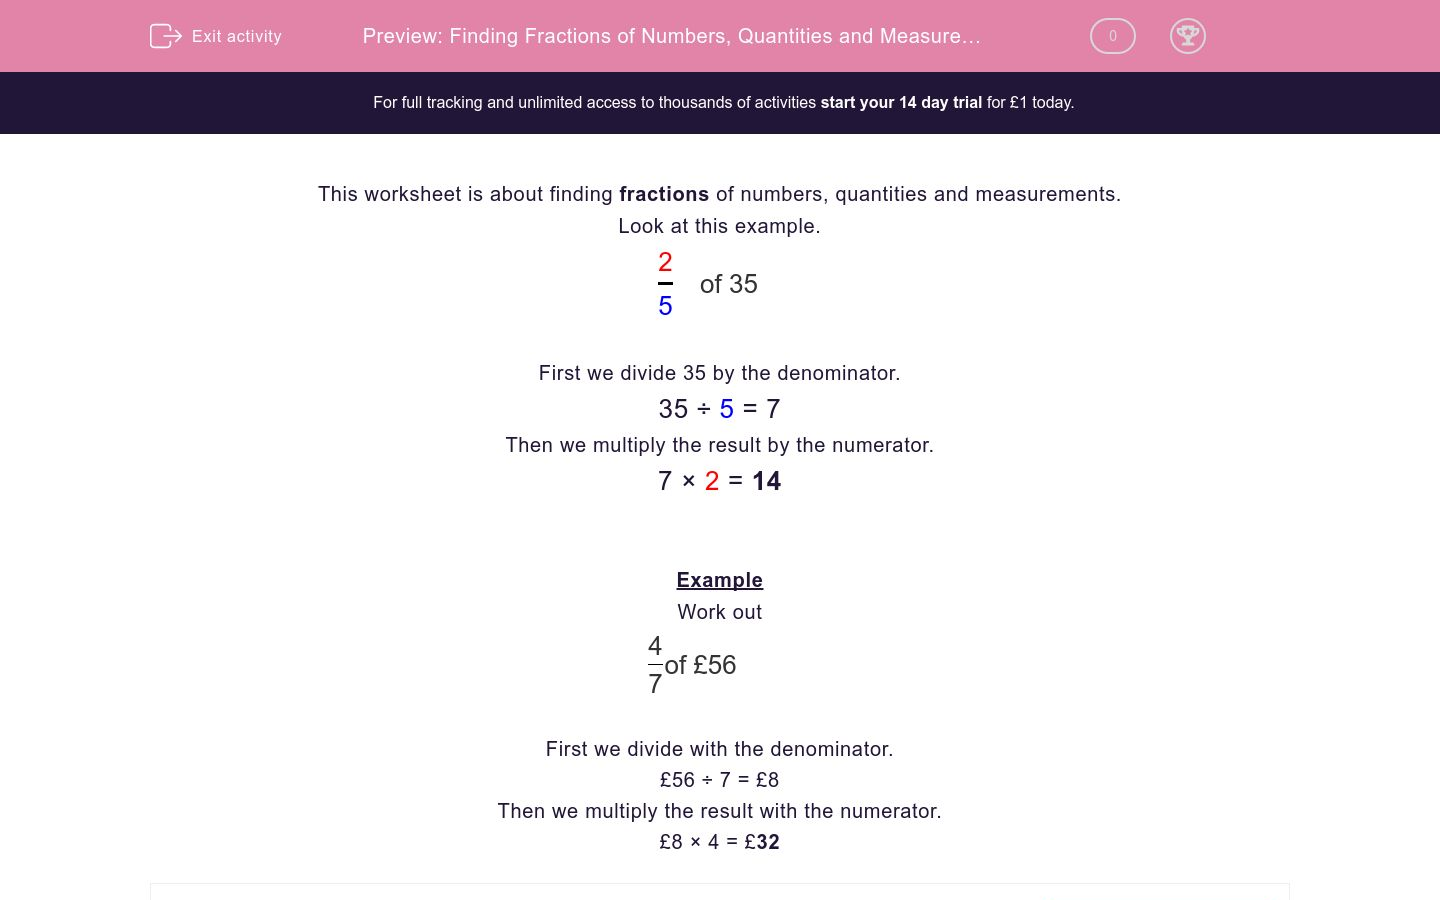 'Finding Fractions of Numbers, Quantities and Measurements' worksheet